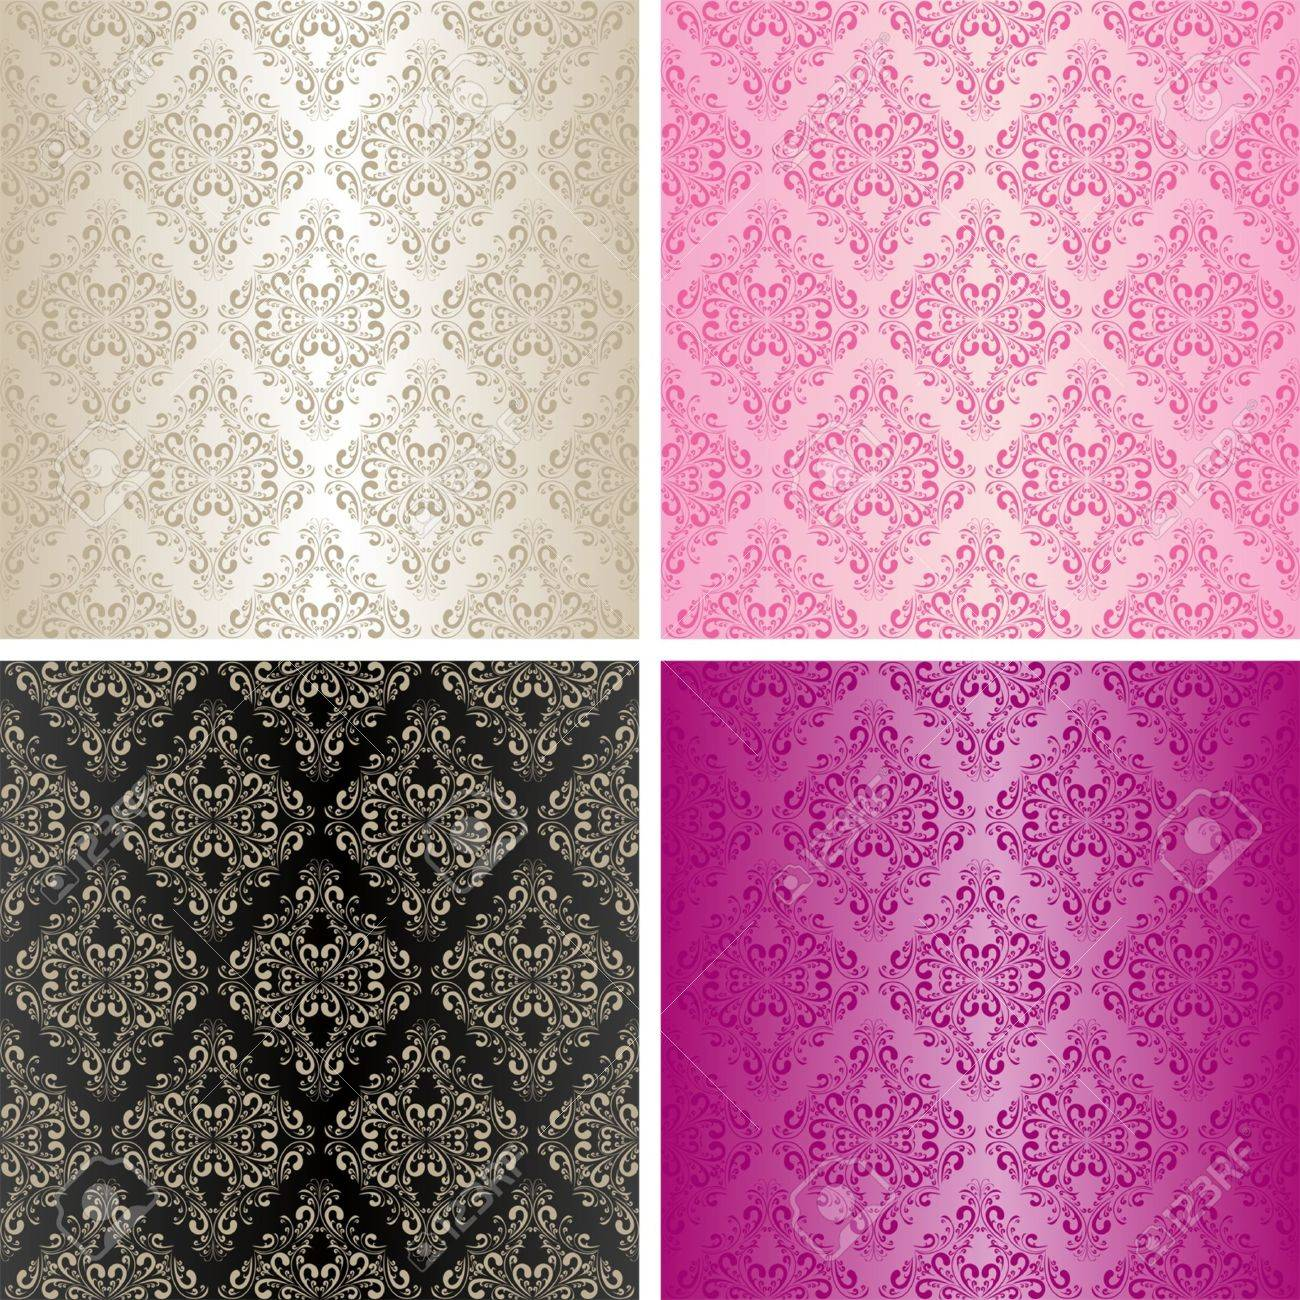 Seamless wallpapers - set of four colors - 15780671